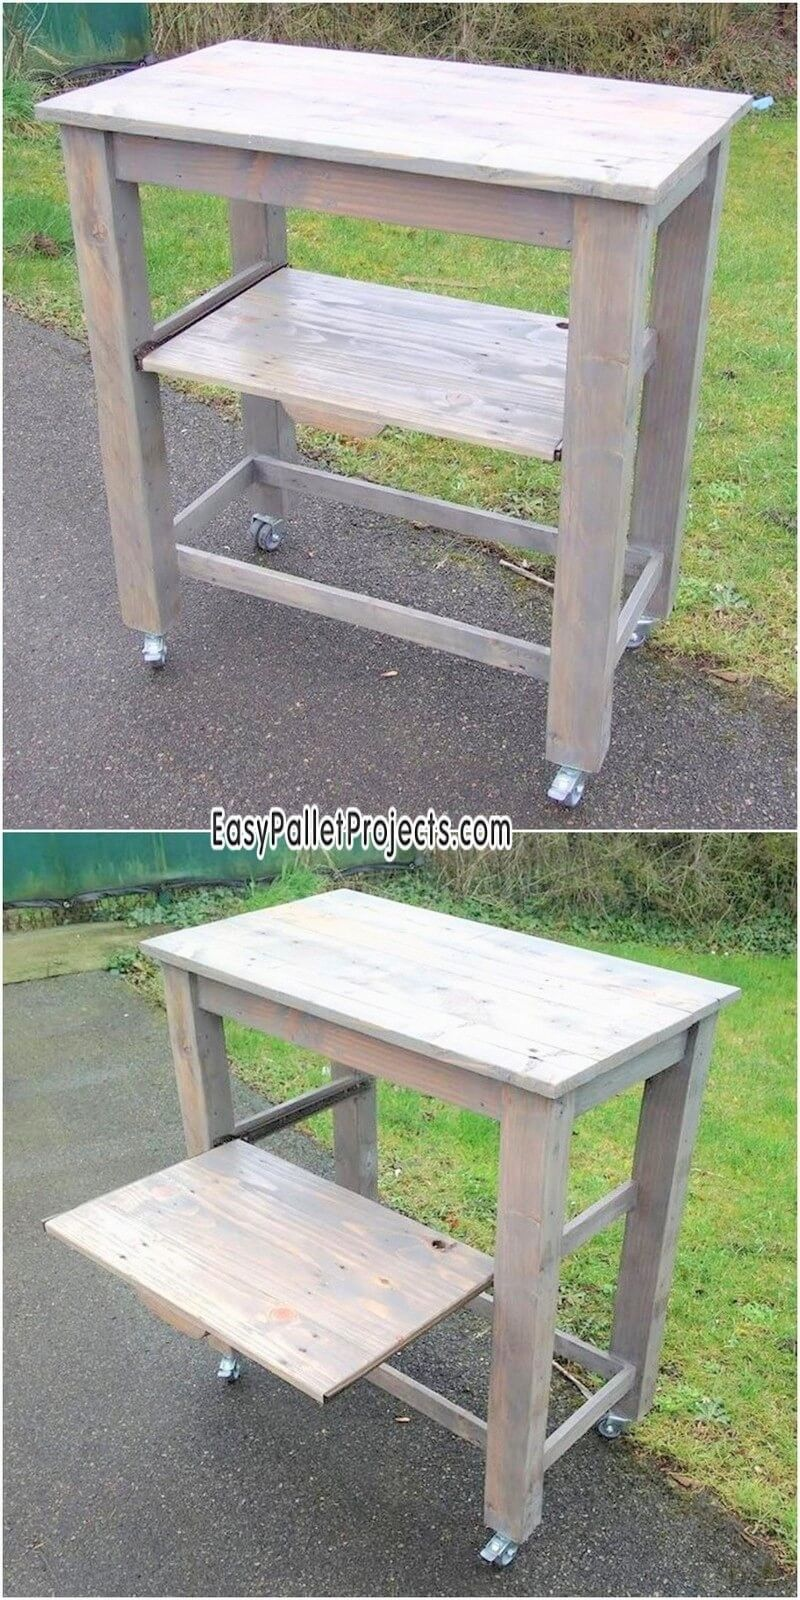 Fabulous Diy Pallet Projects Pallet Garden Furniture Pallet Diy